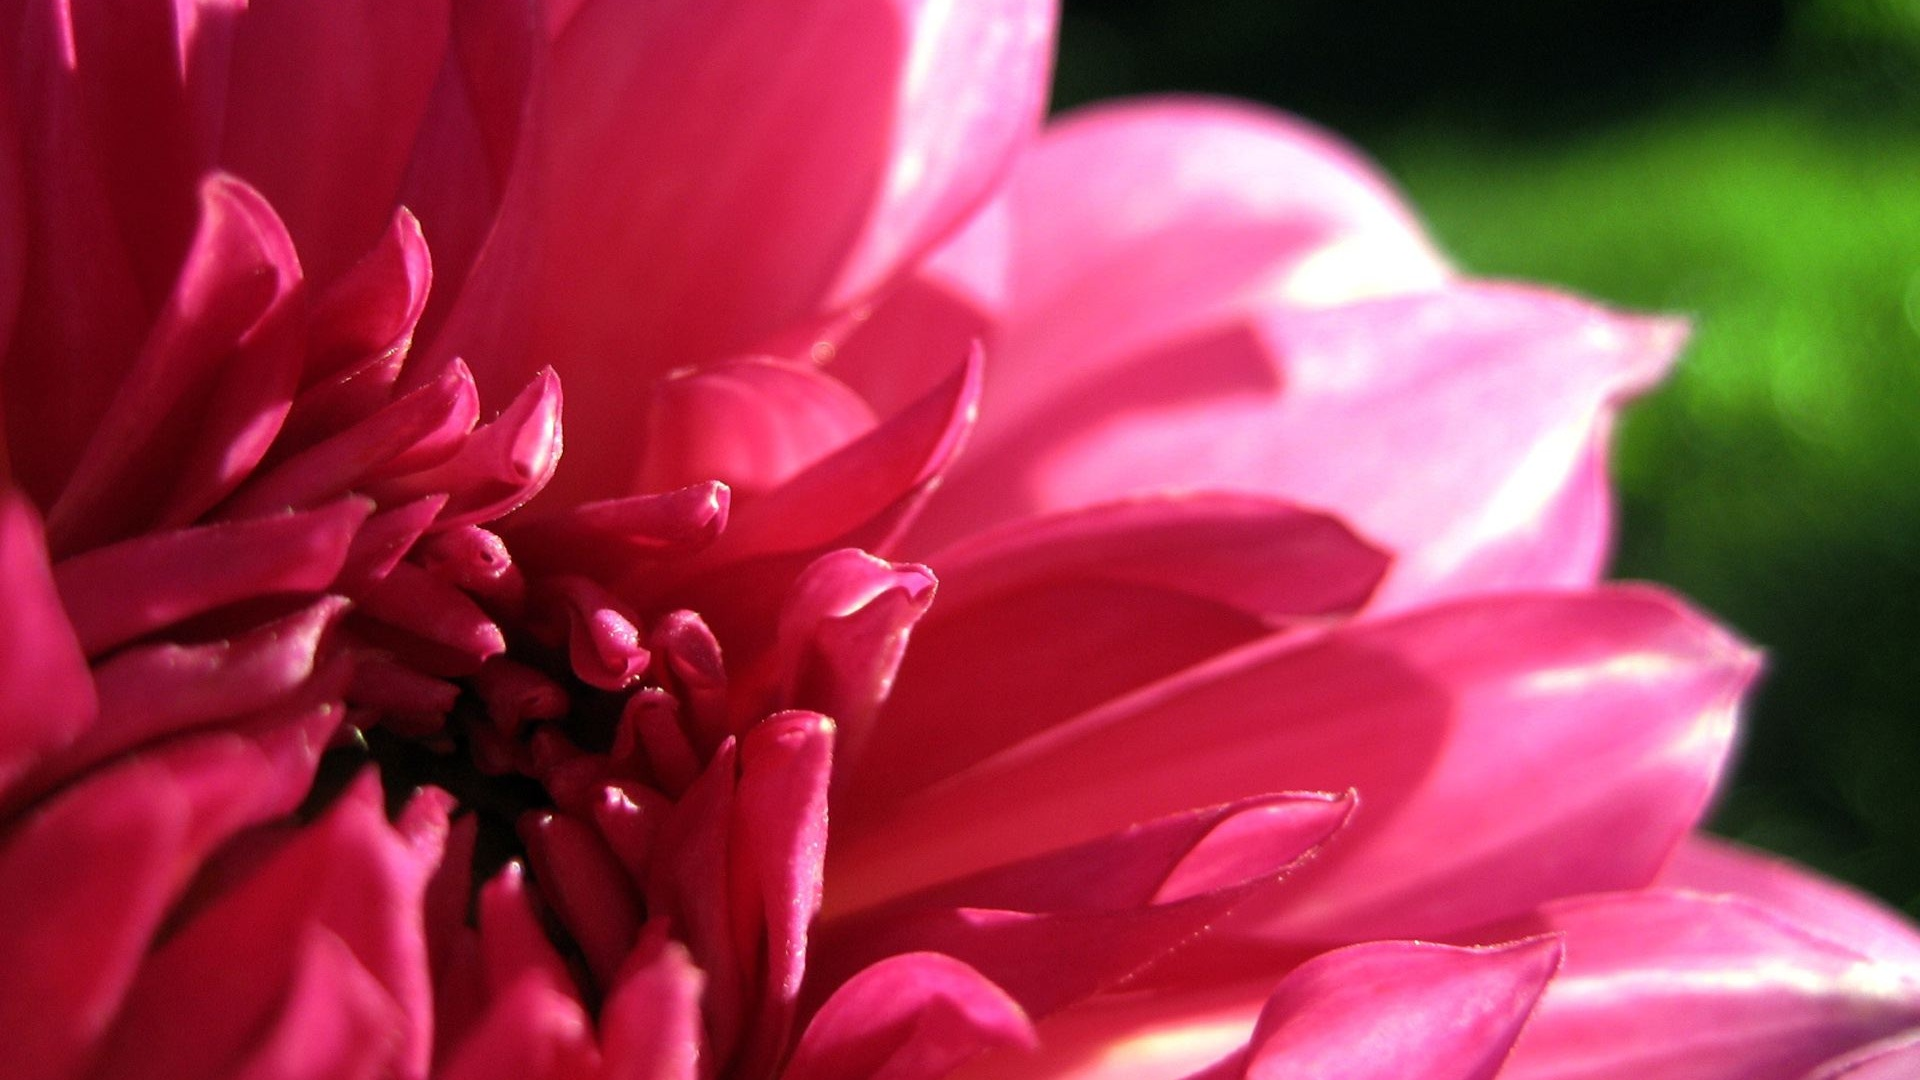 Dahlia Flower Hd Highresolution Pictures Desktop Background